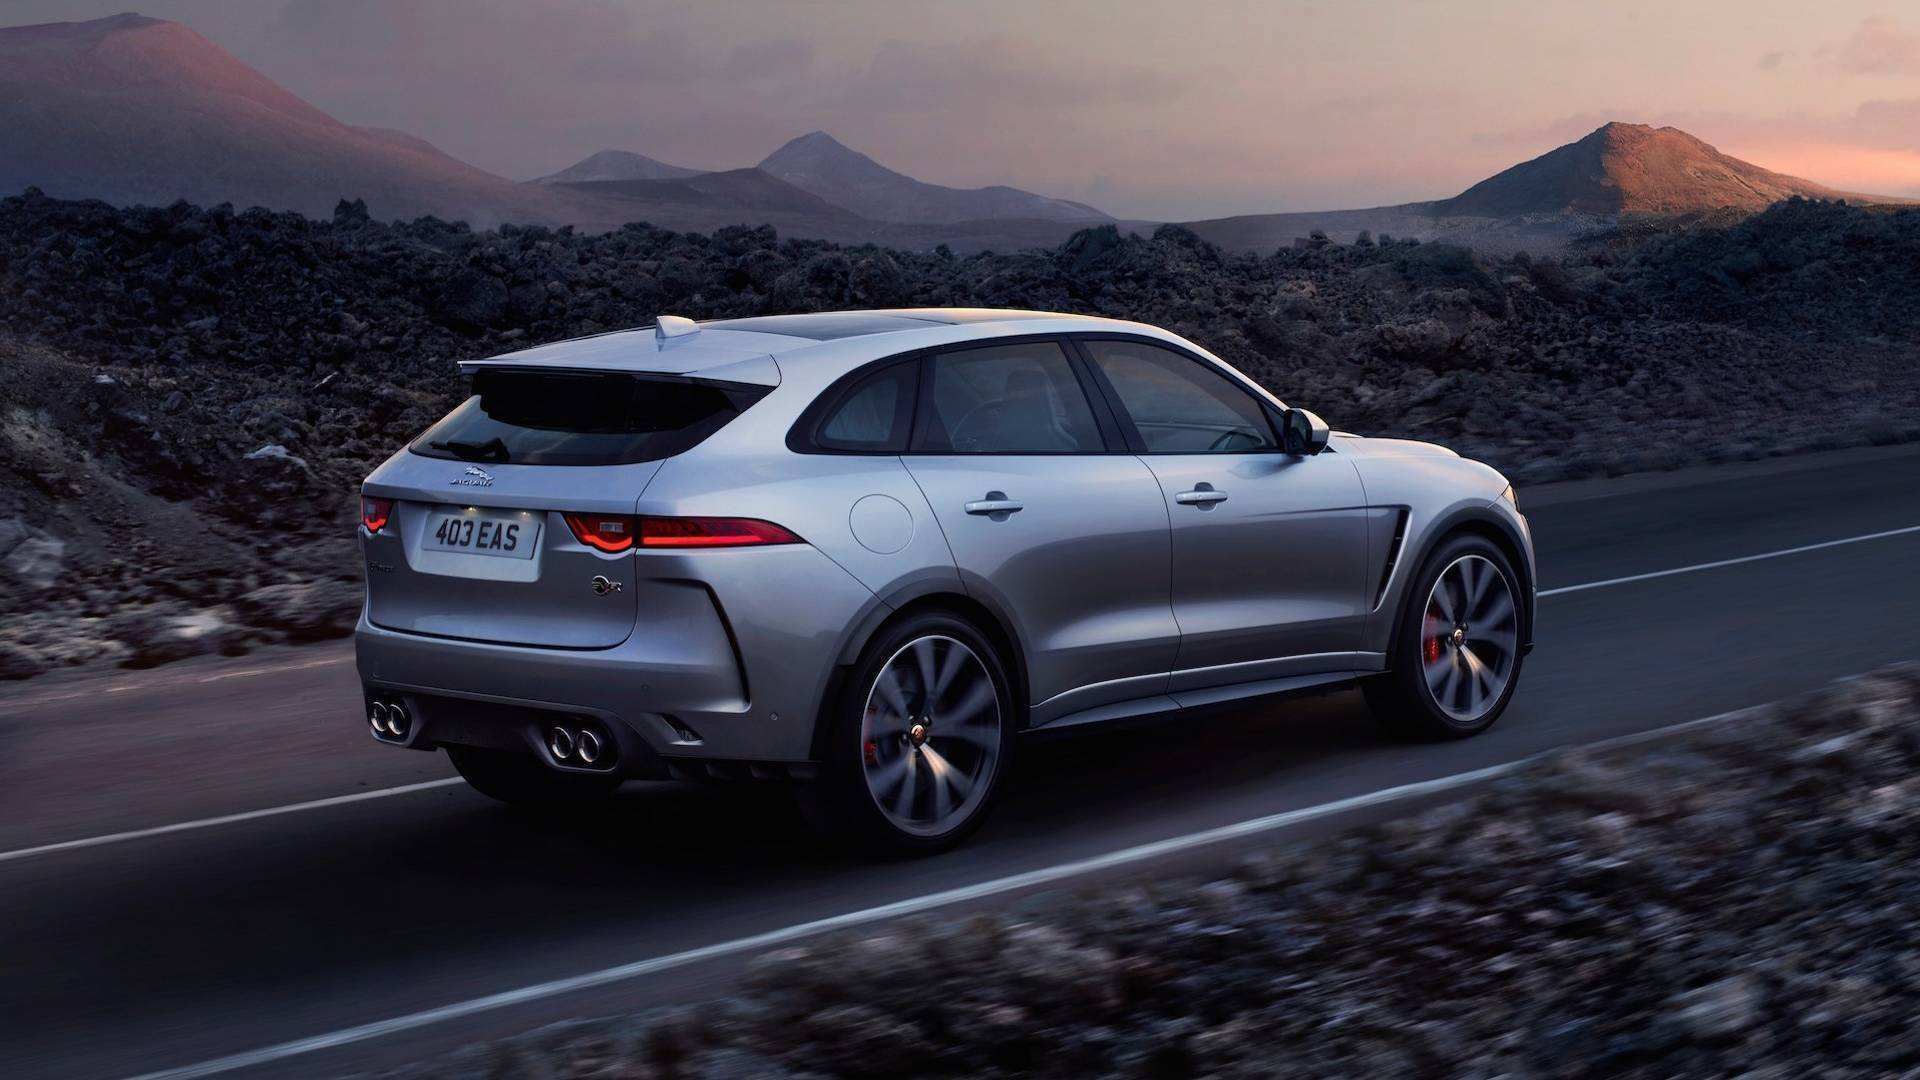 74 New Jaguar Suv 2019 Spesification